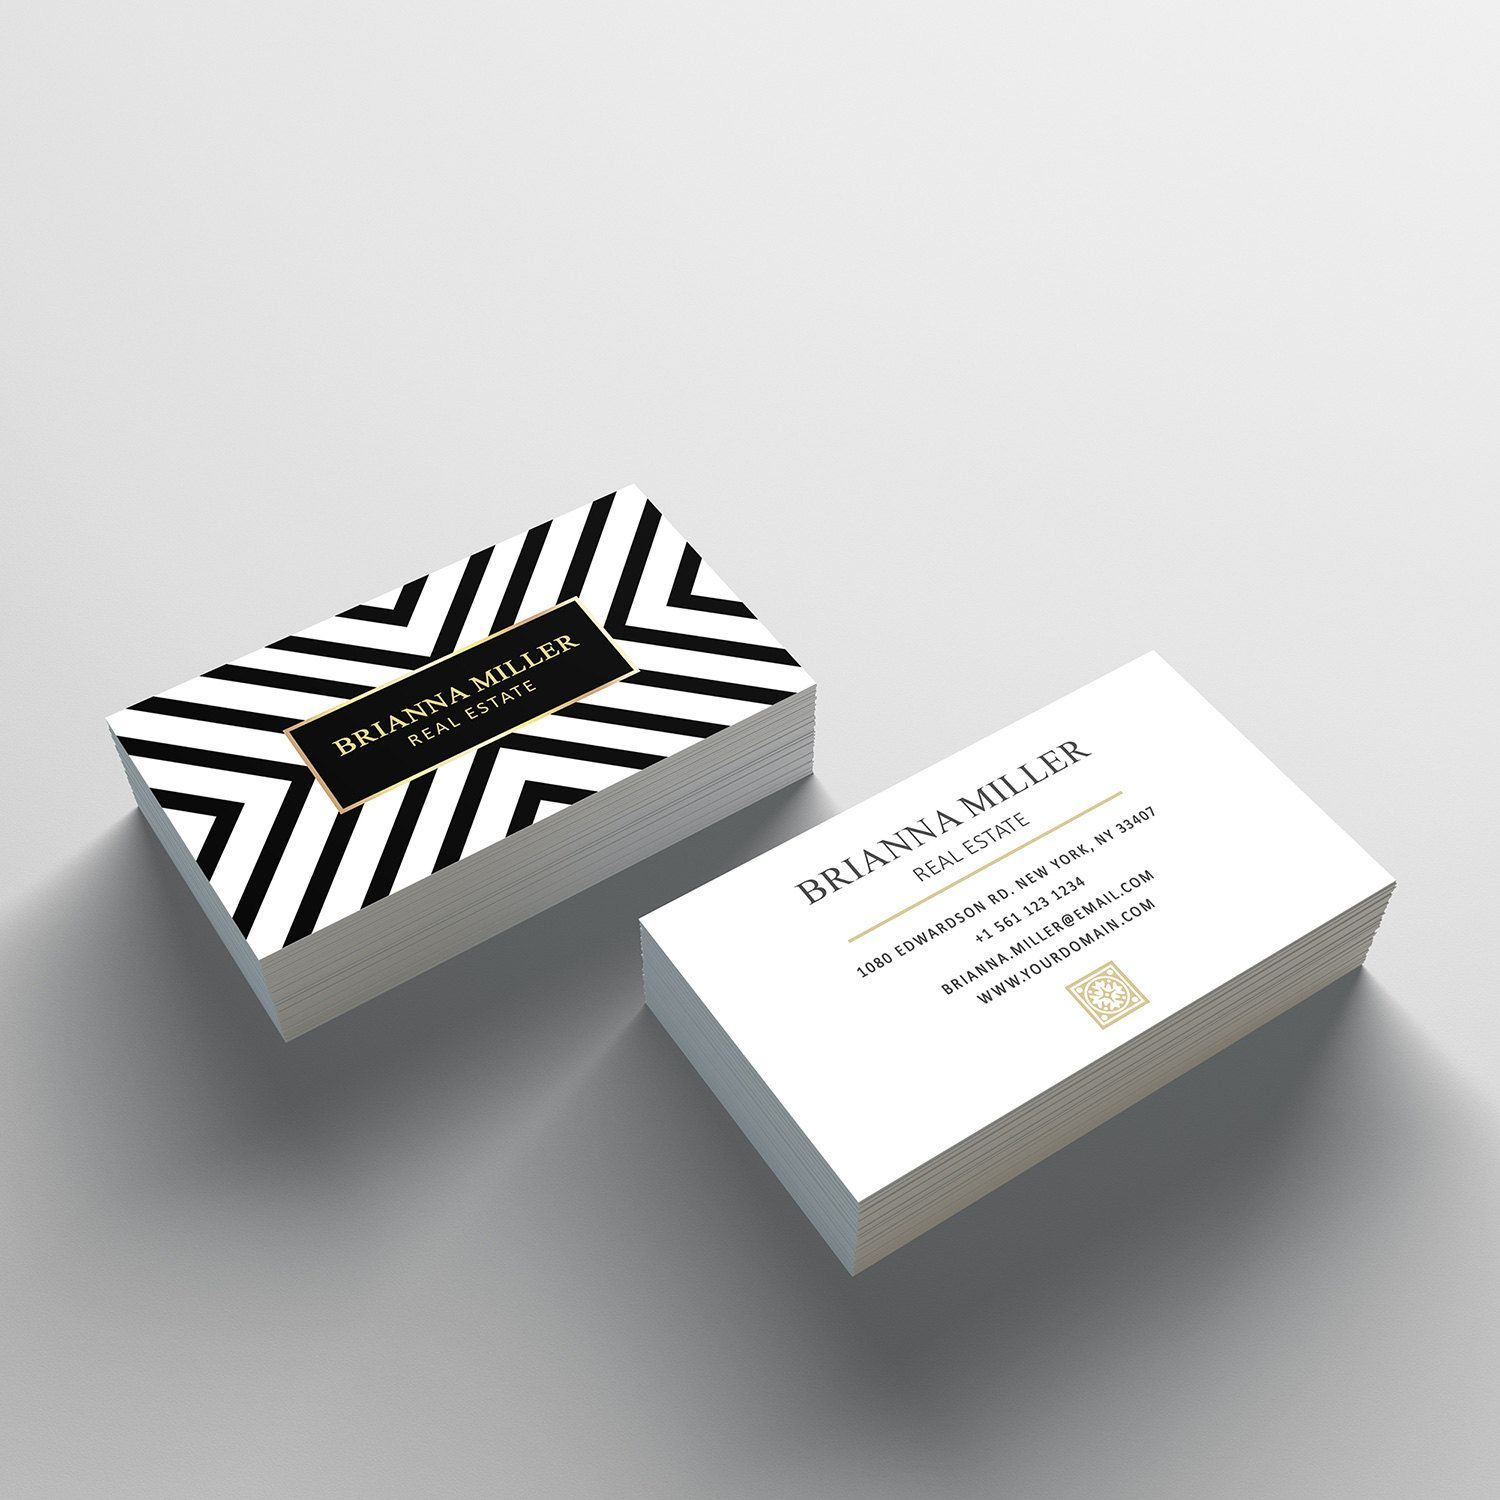 Business Card Template - 2 Sided Business Card Design In 2 Sided Business Card Template Word